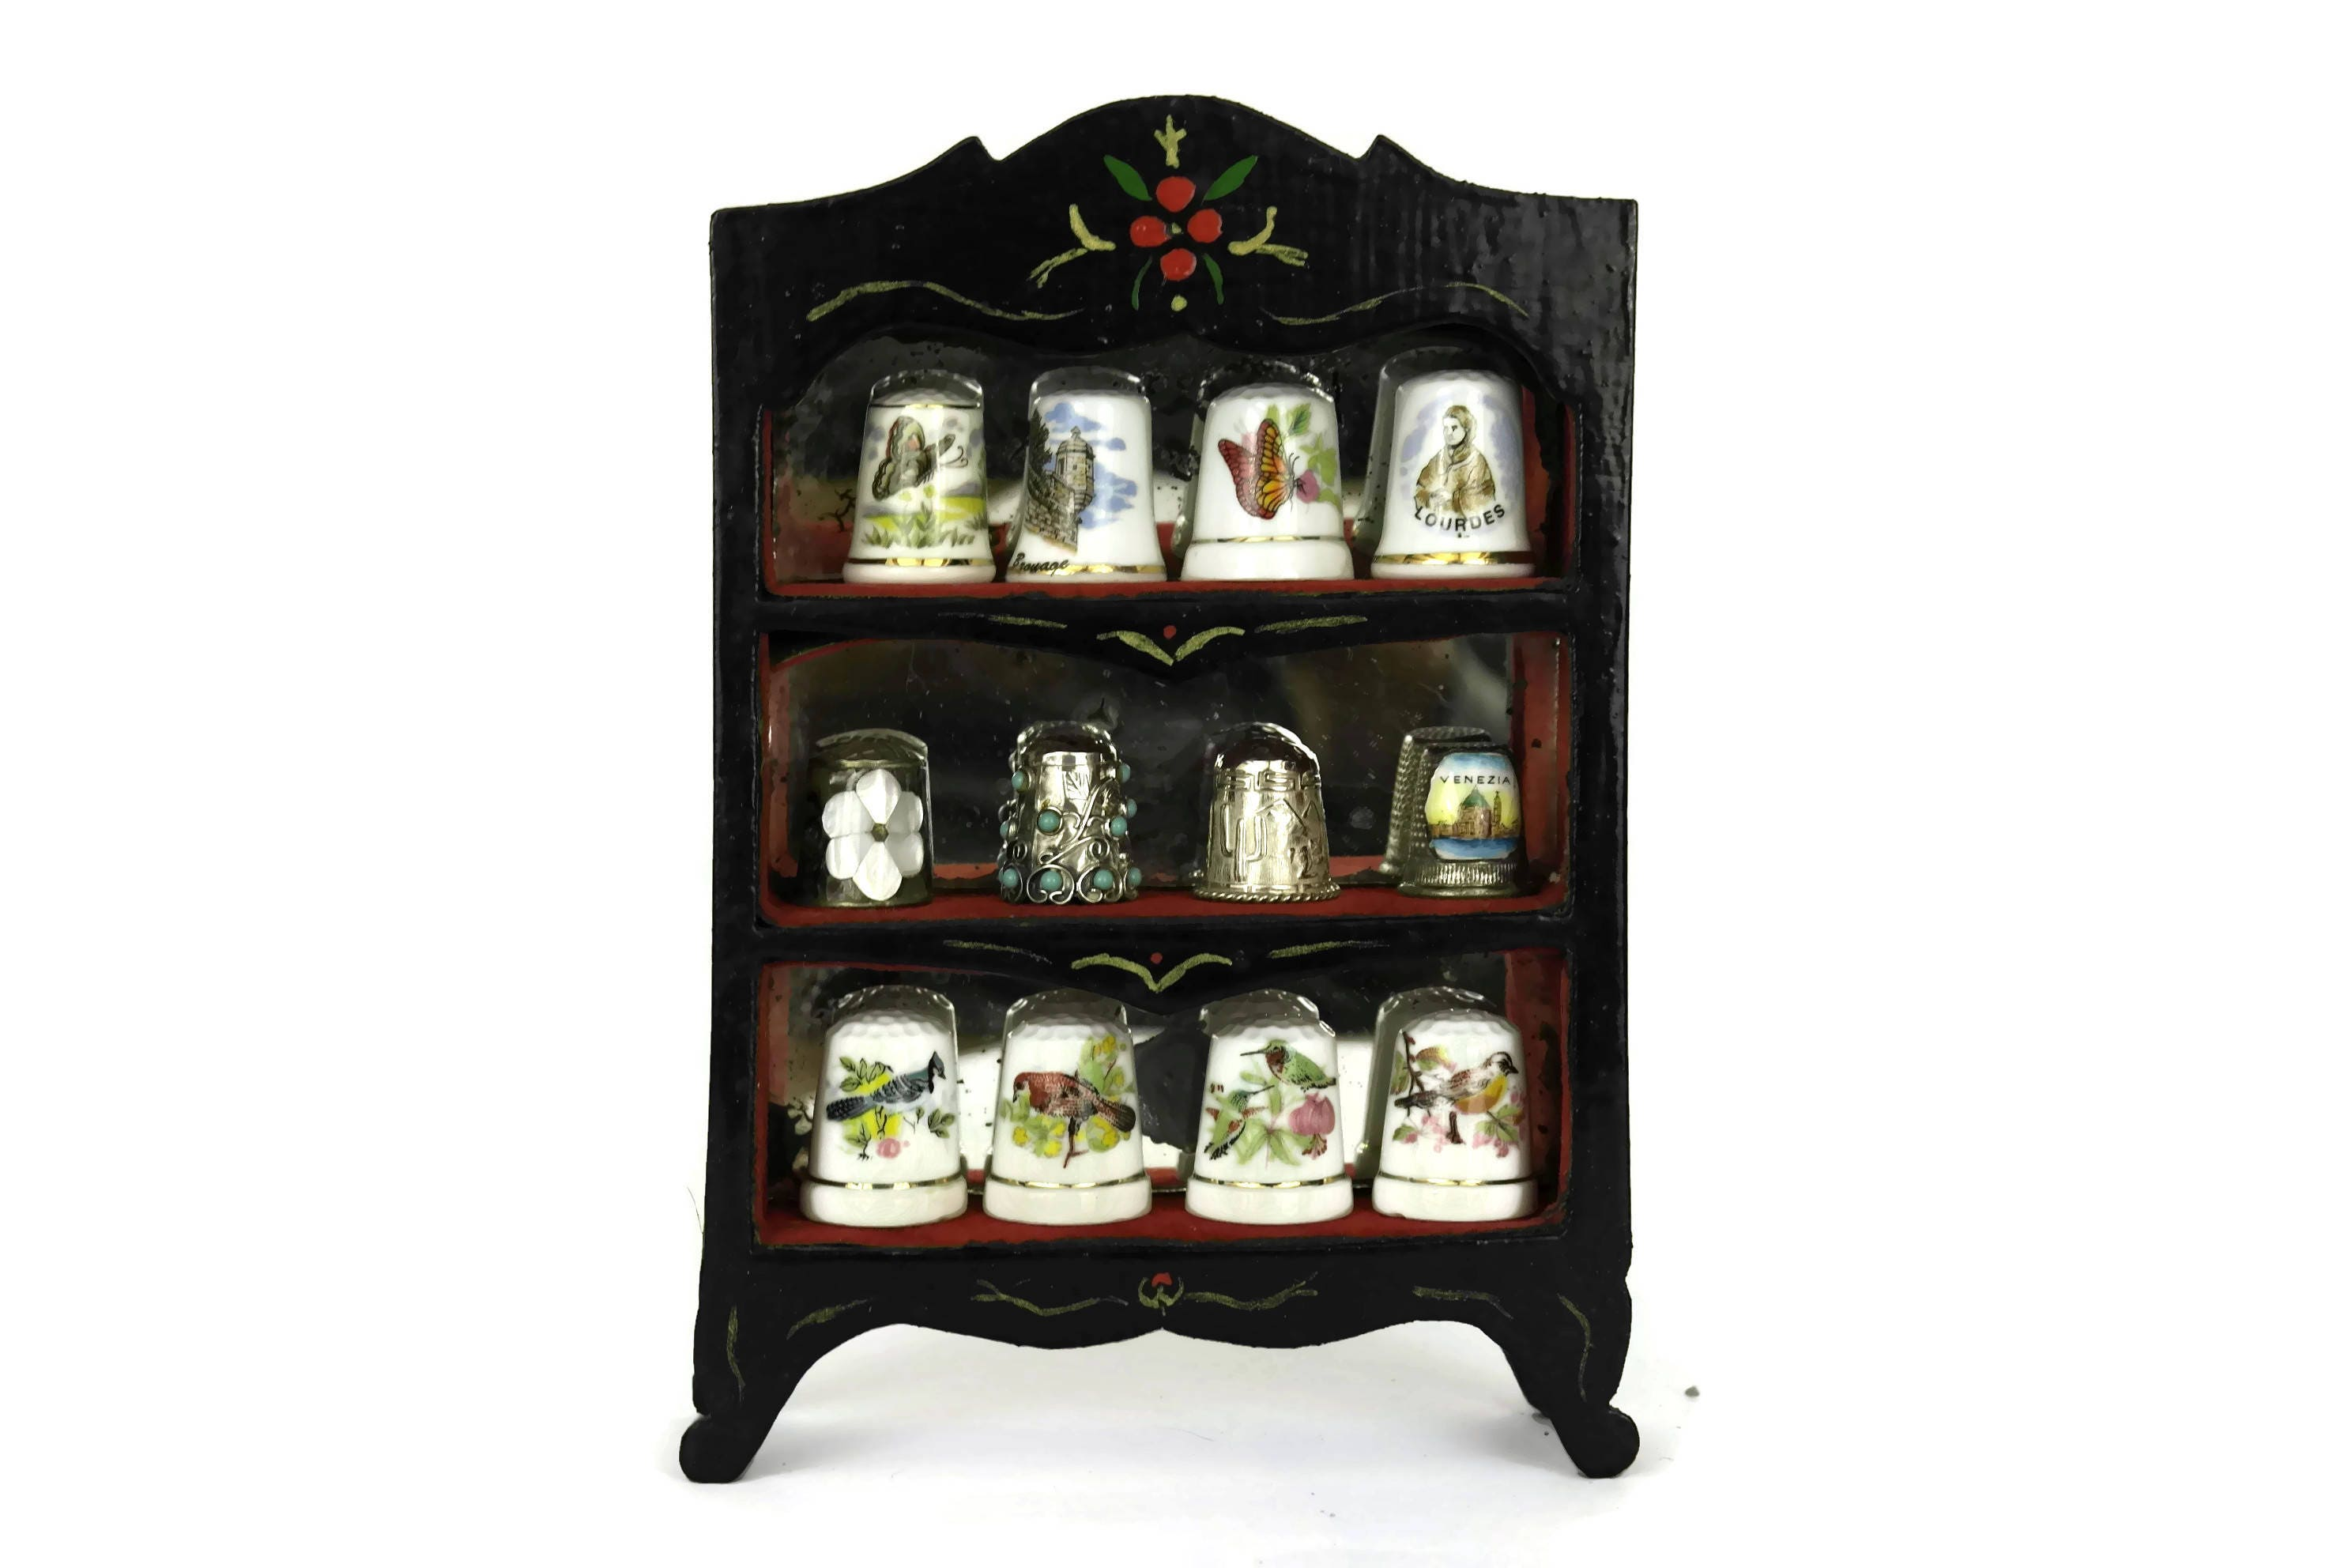 thimble collection in display case. vintage french porcelain and